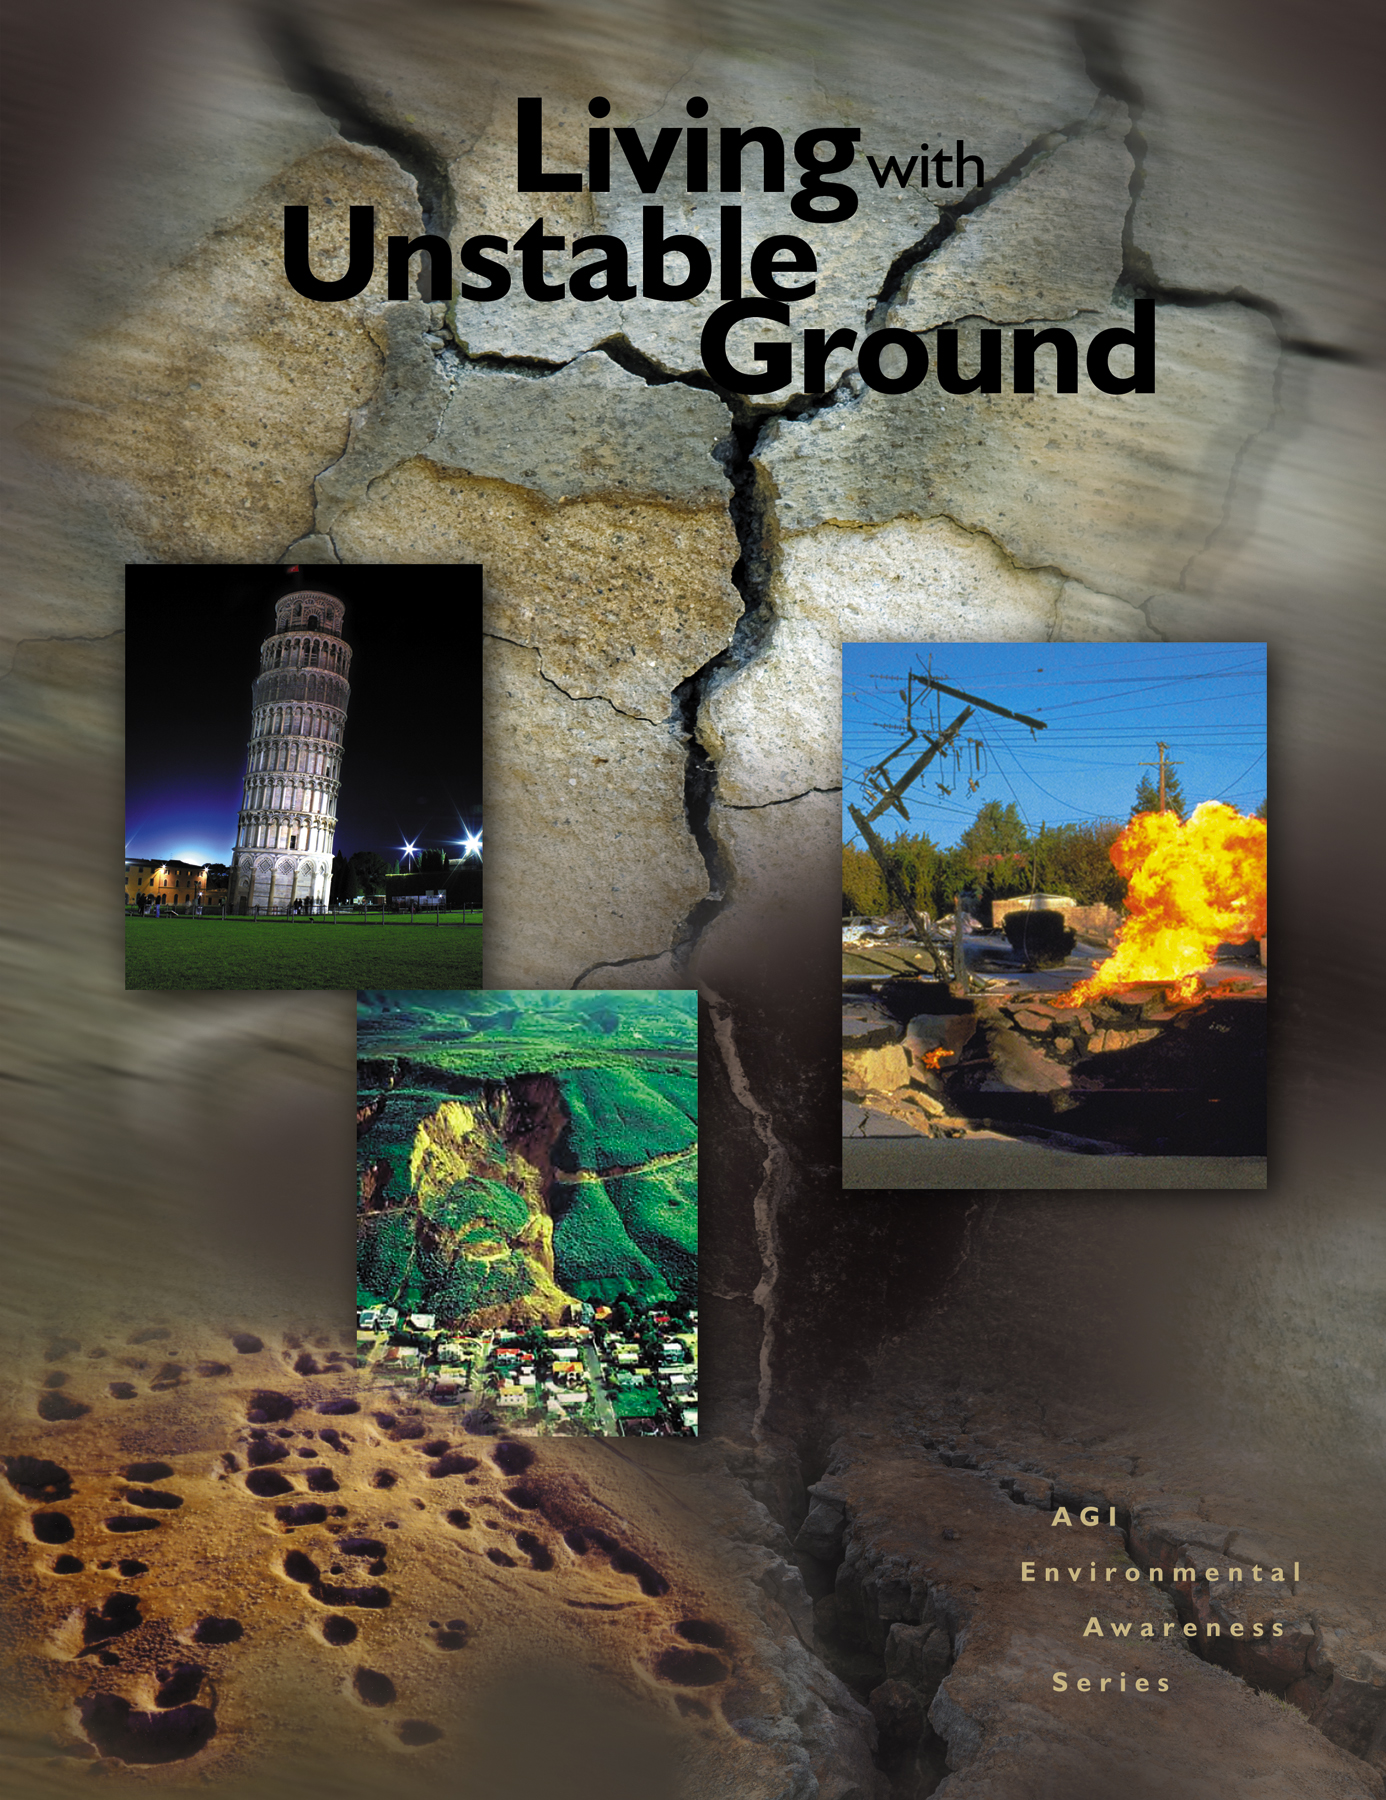 Environmental Awareness Series - Living with Unstable Ground